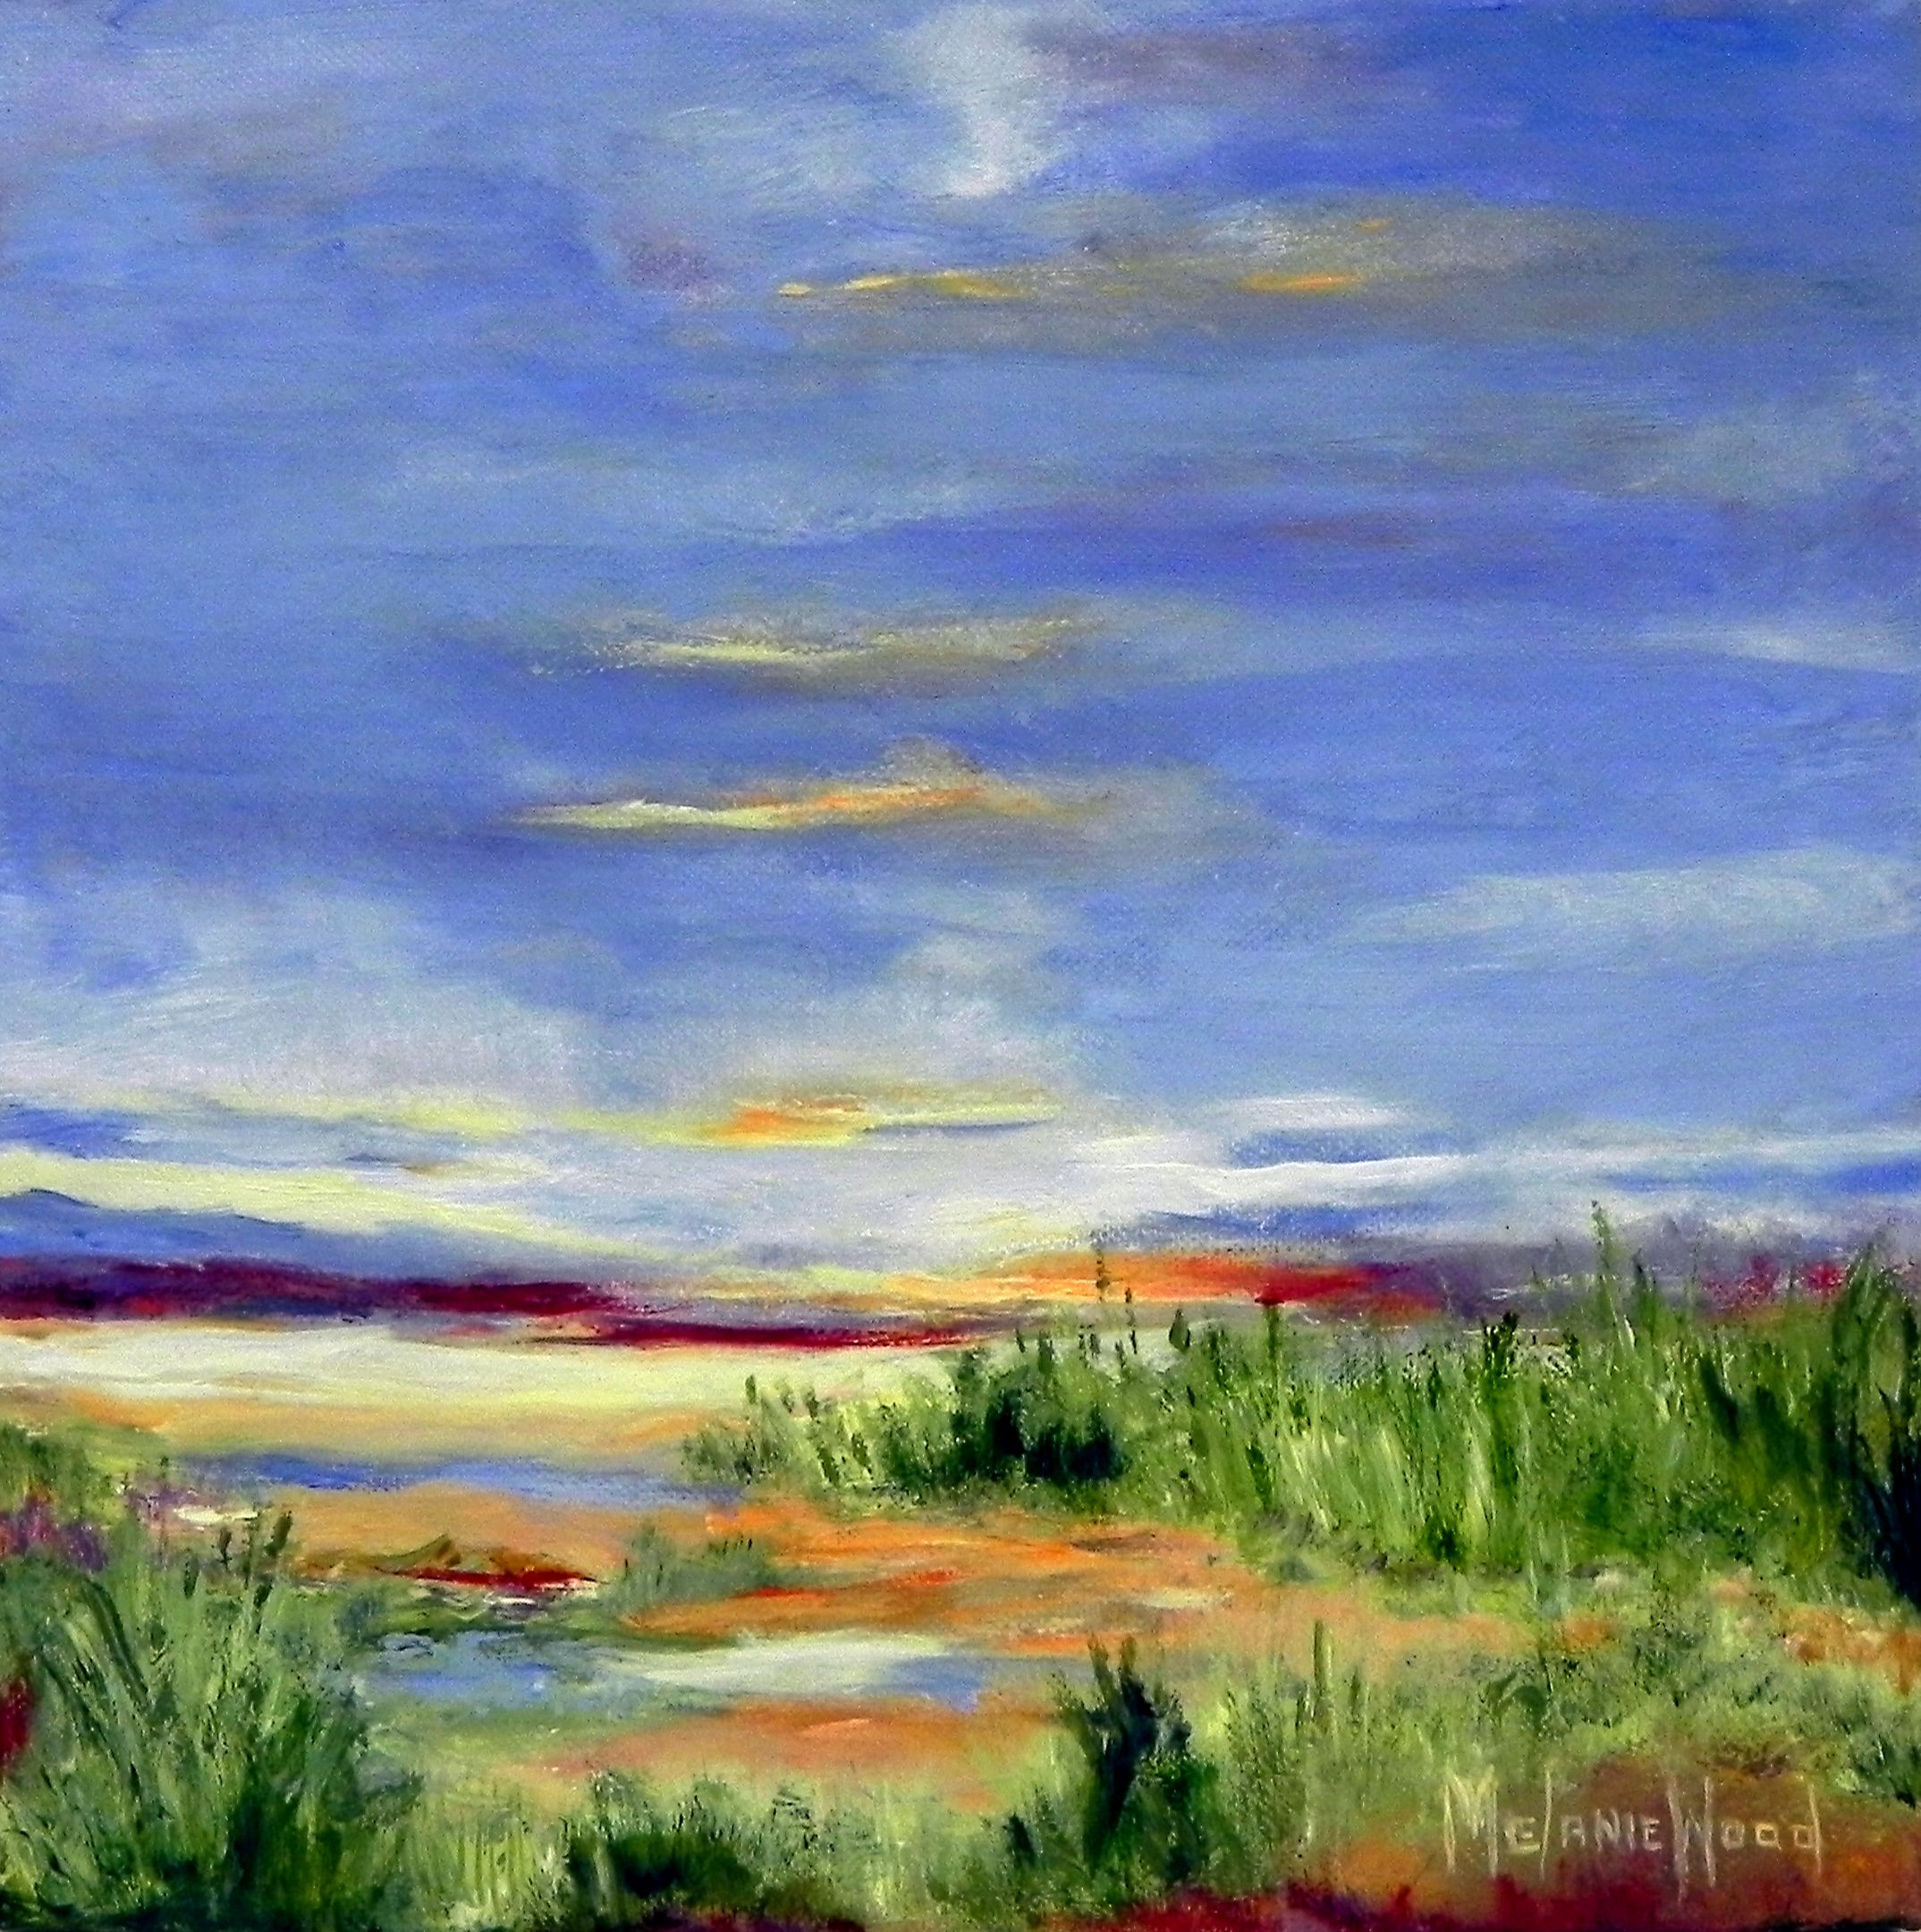 """Marsh In the Glow"" oil painting on canvas by Melanie Wood."